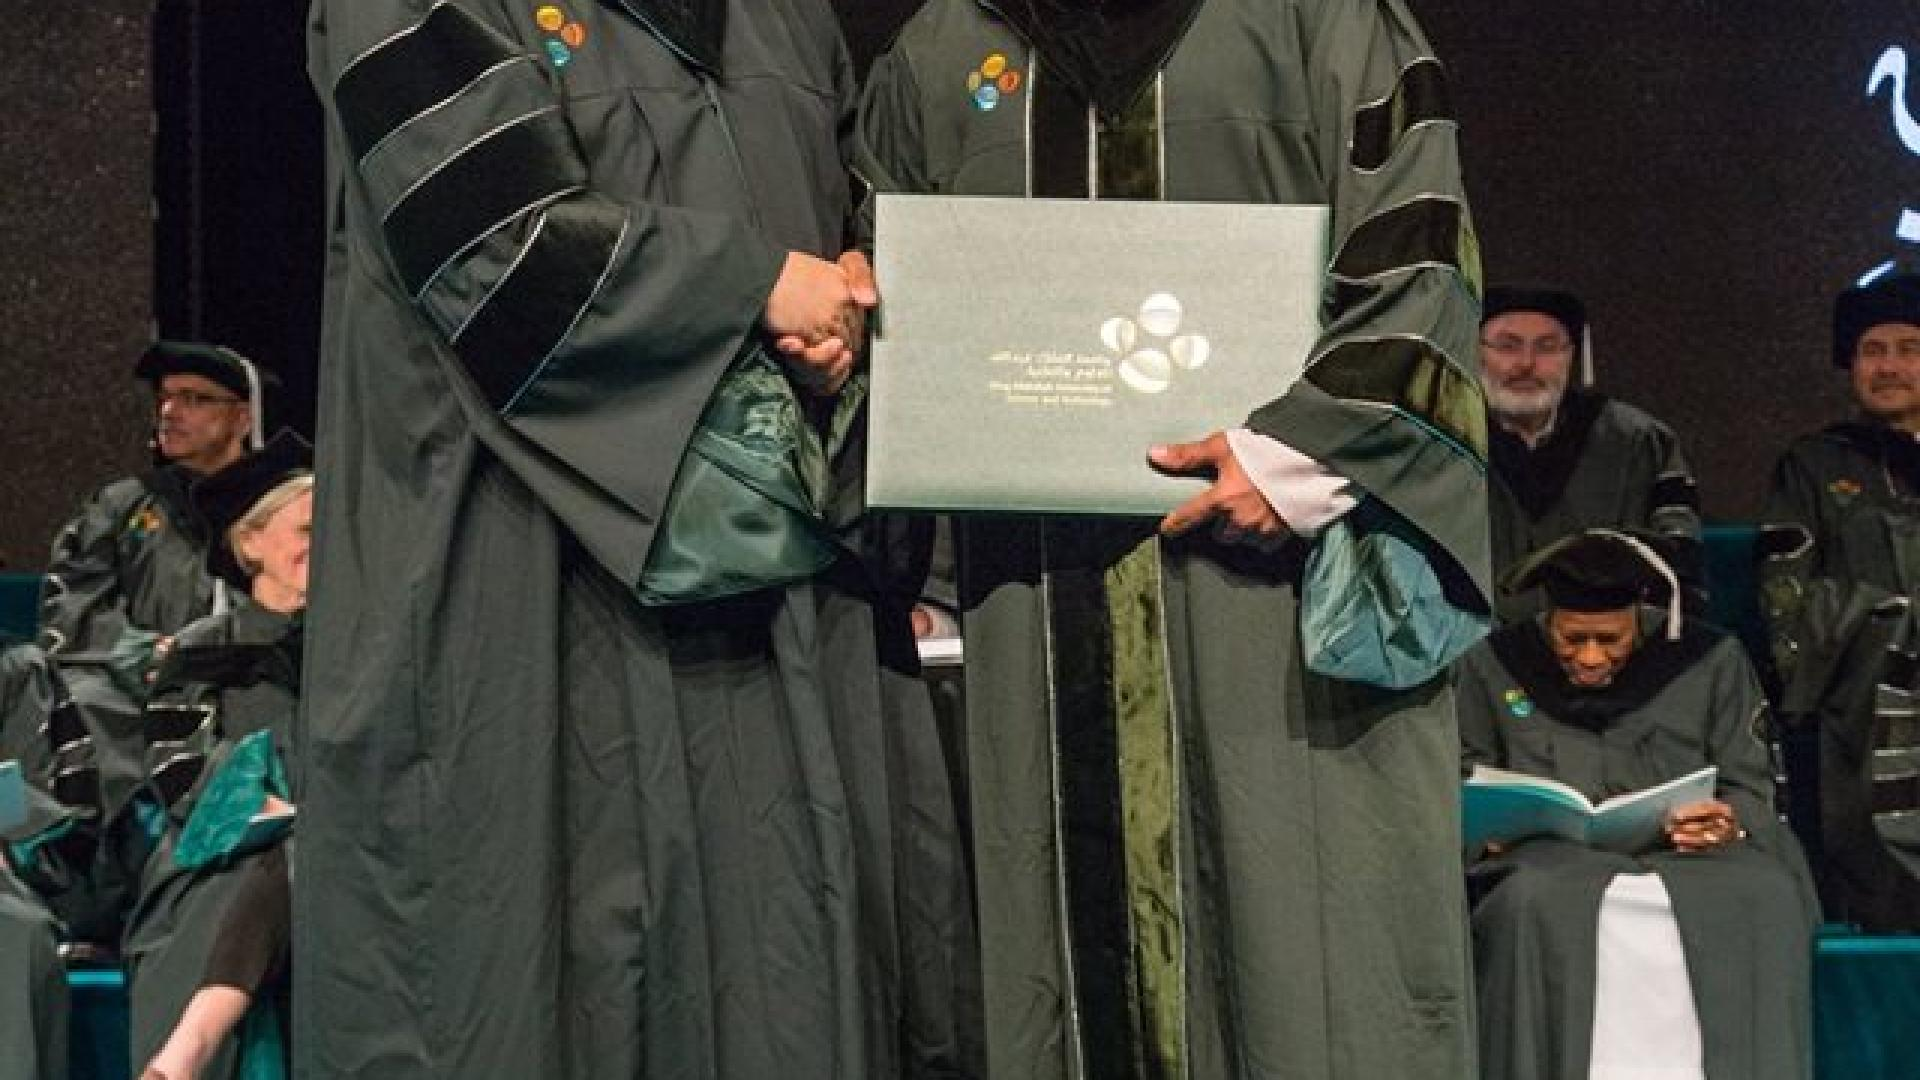 Professor Alouini with Imran Ansari during graduation ceremony